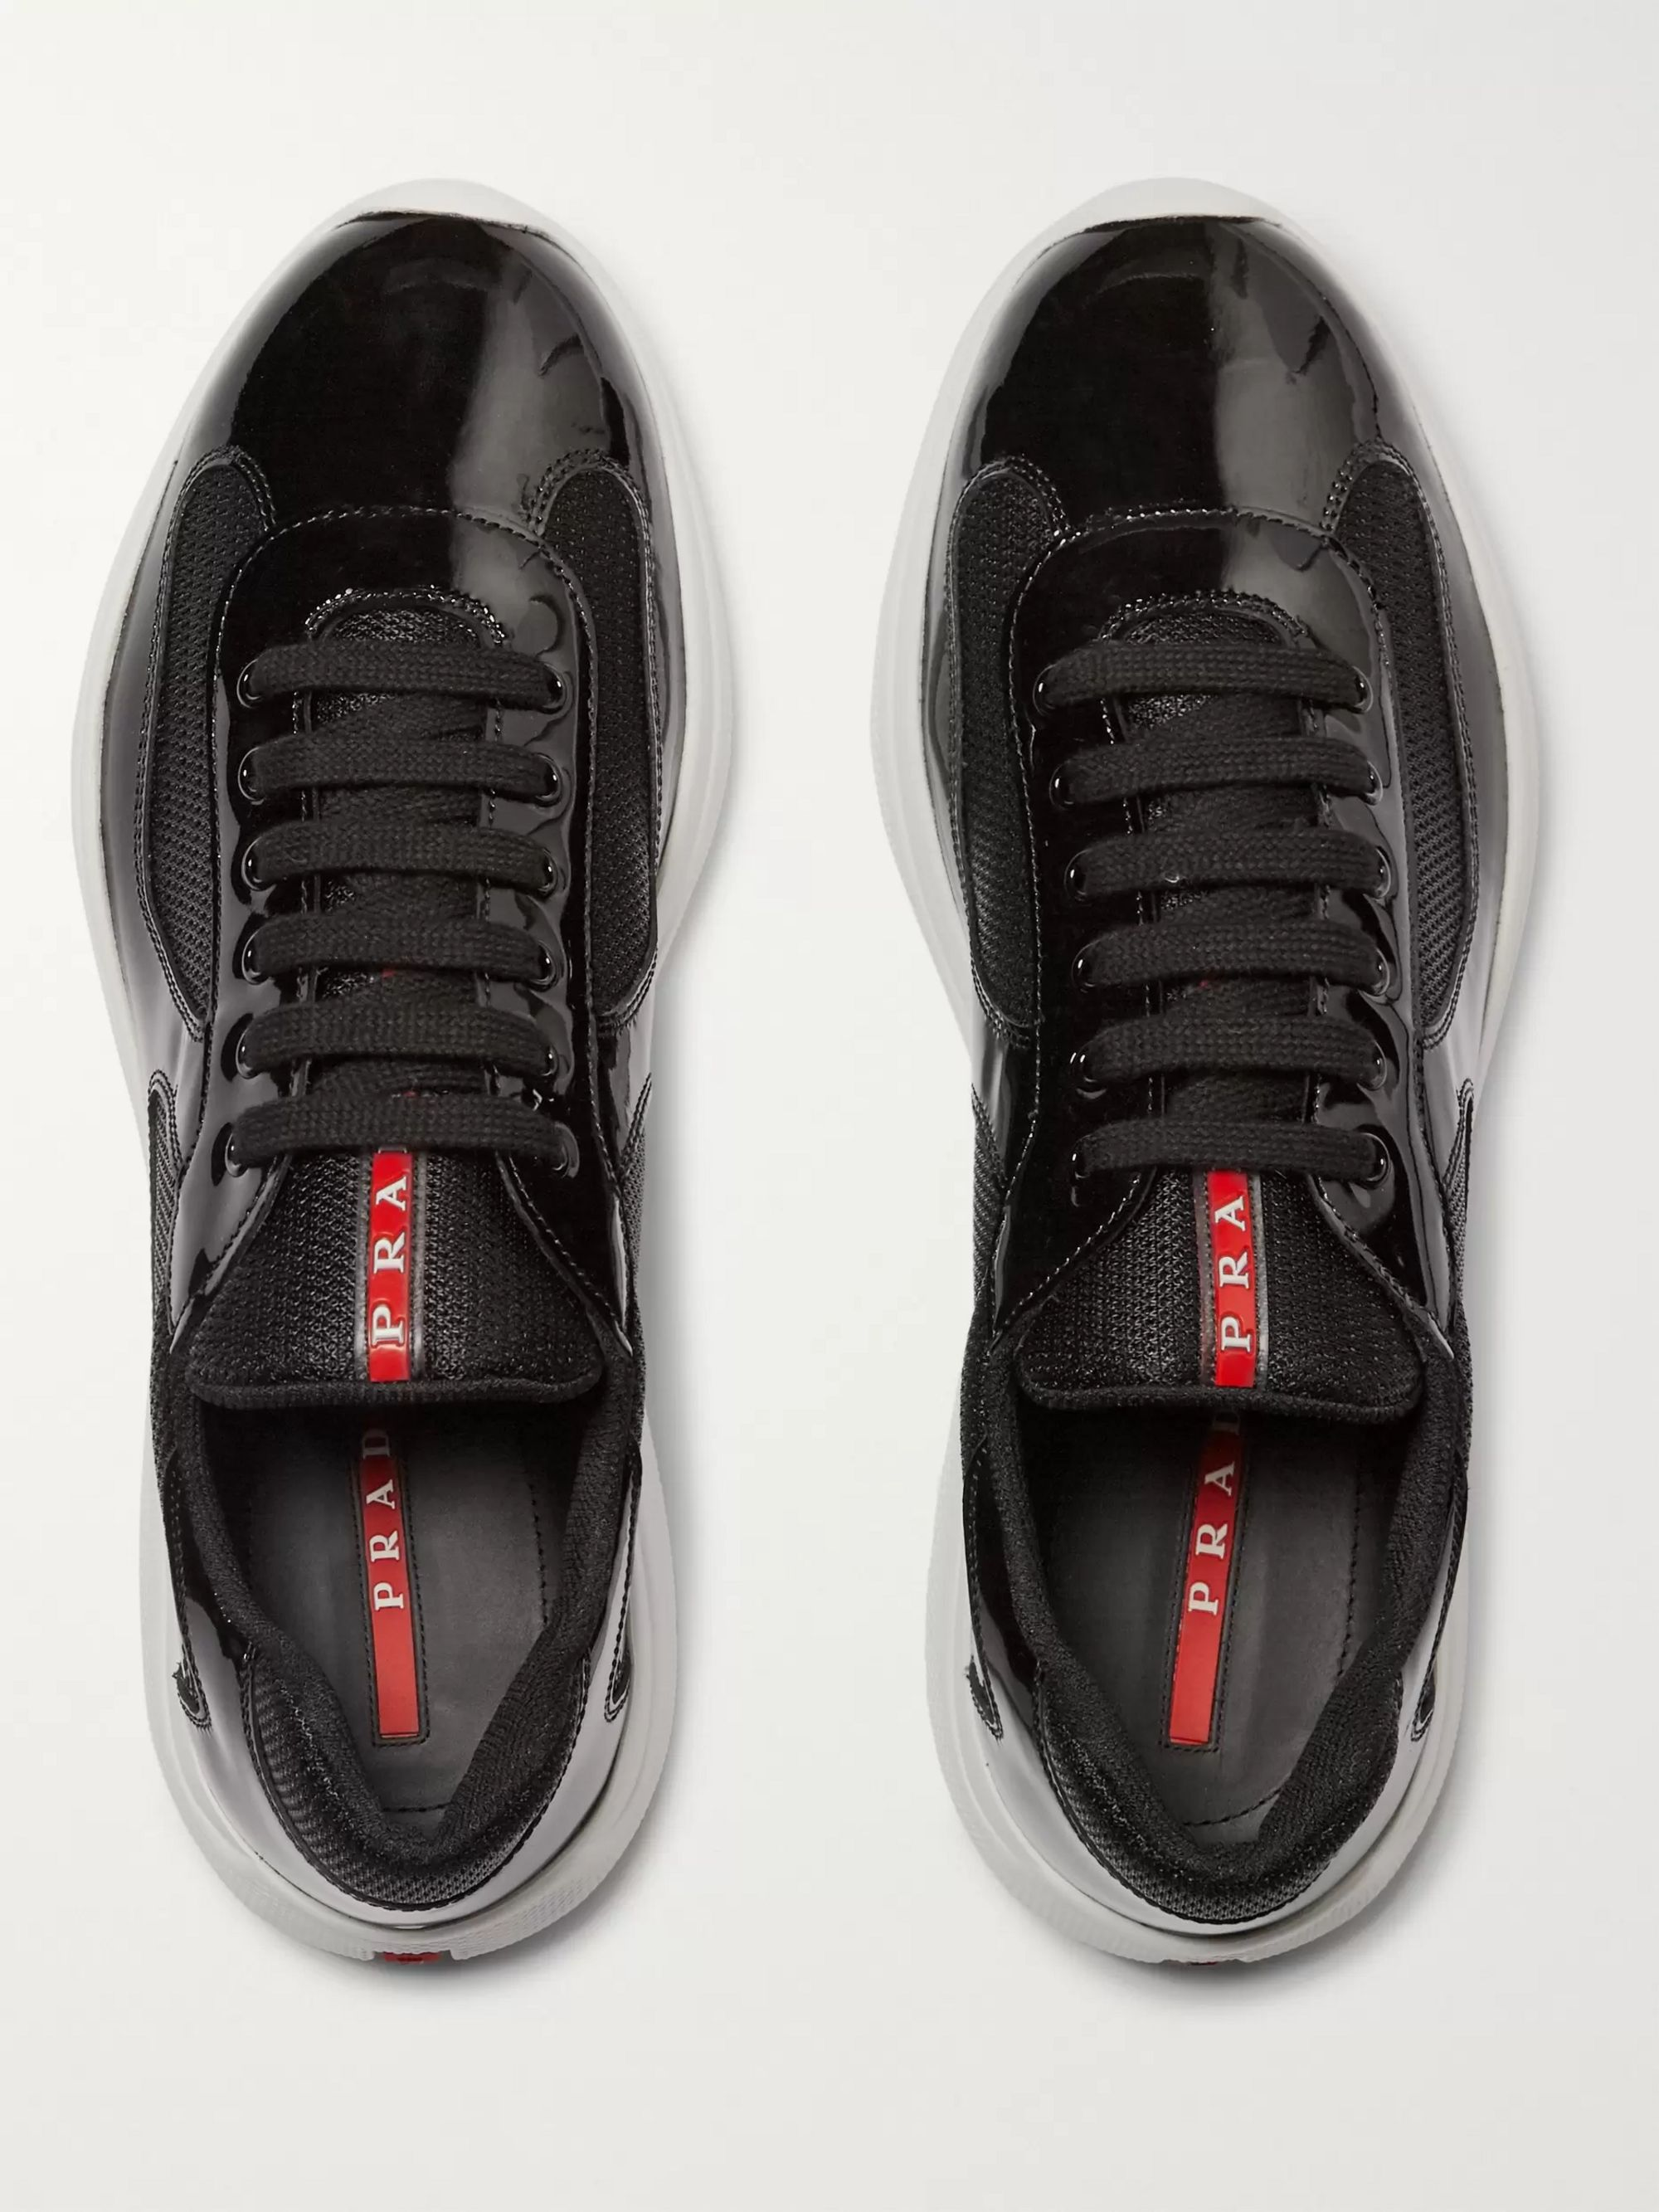 Prada America's Cup Patent-Leather and Mesh Sneakers